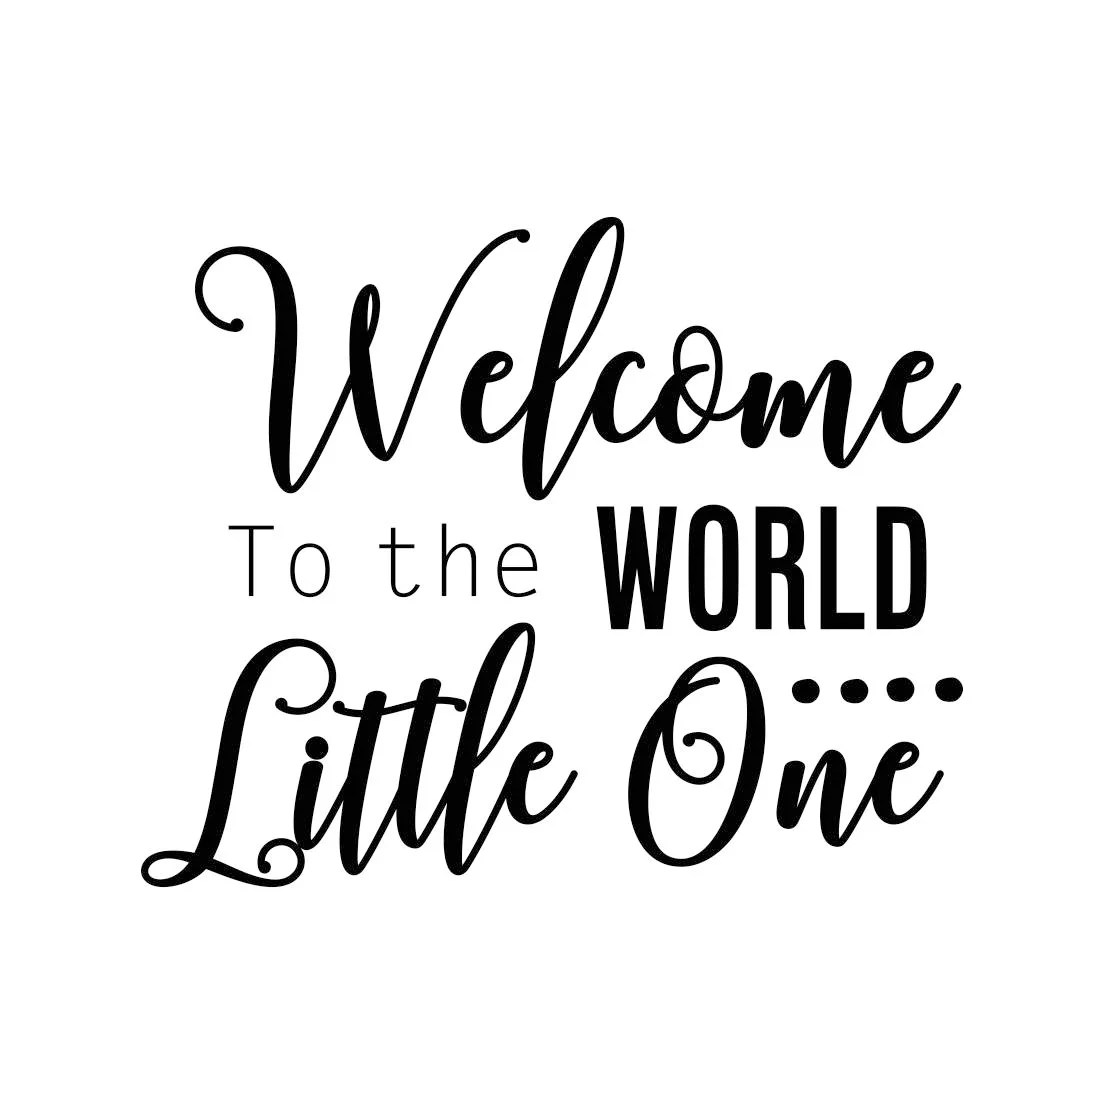 Welcome To The World Little One Phrase Graphics Svg Dxf